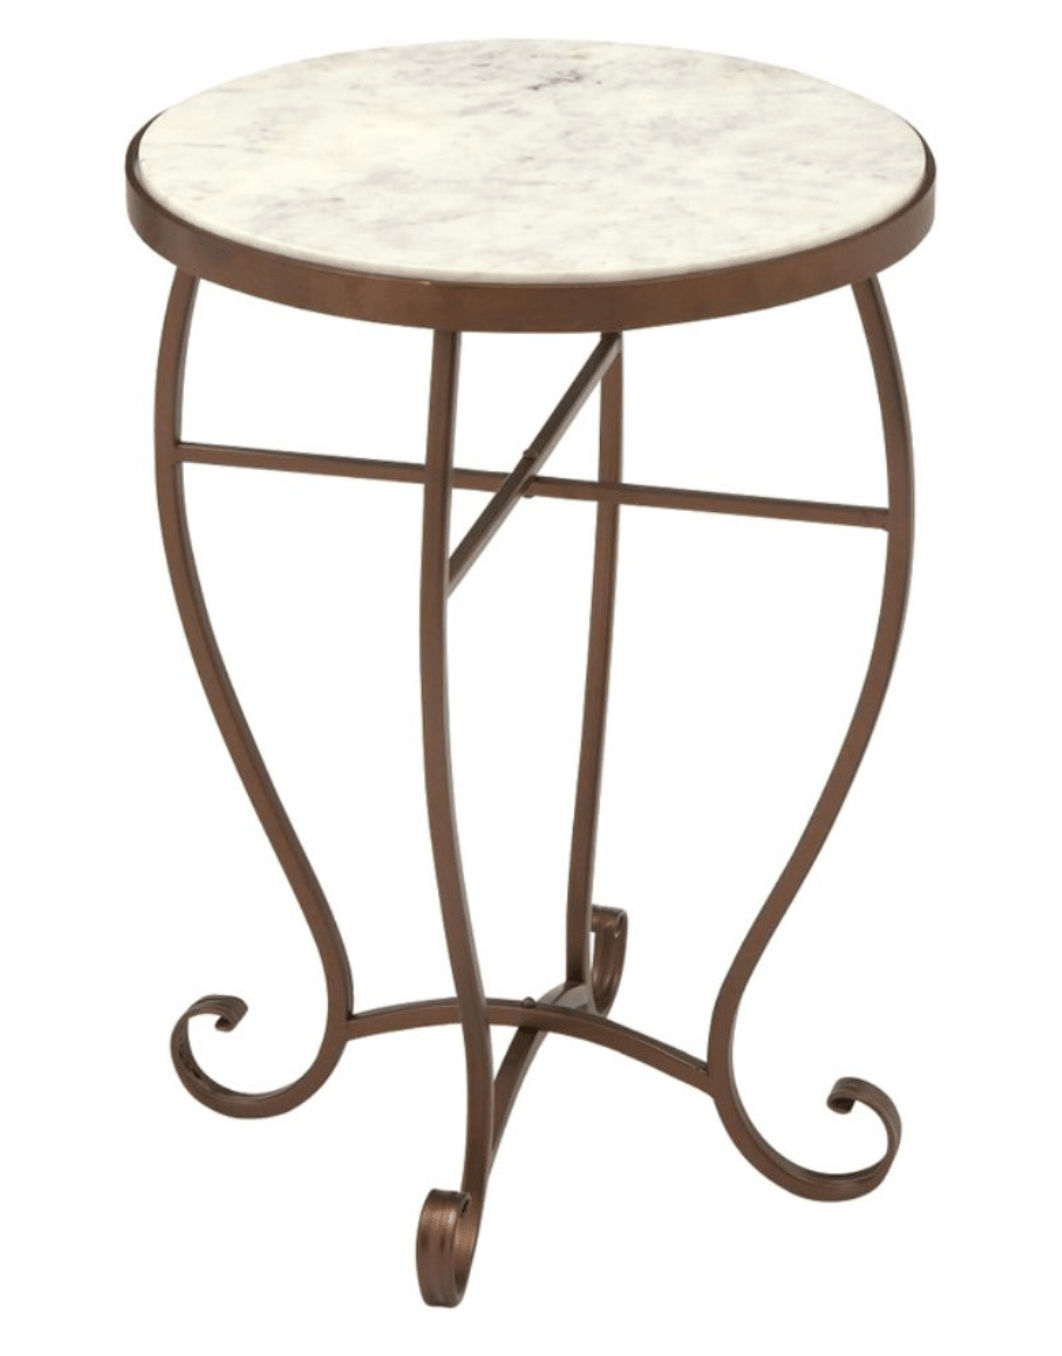 lovely small accent table for compact marble round min unique tables top corner hallway oriental lamps west elm couch pottery barn glass hammered copper side rustic entry deck